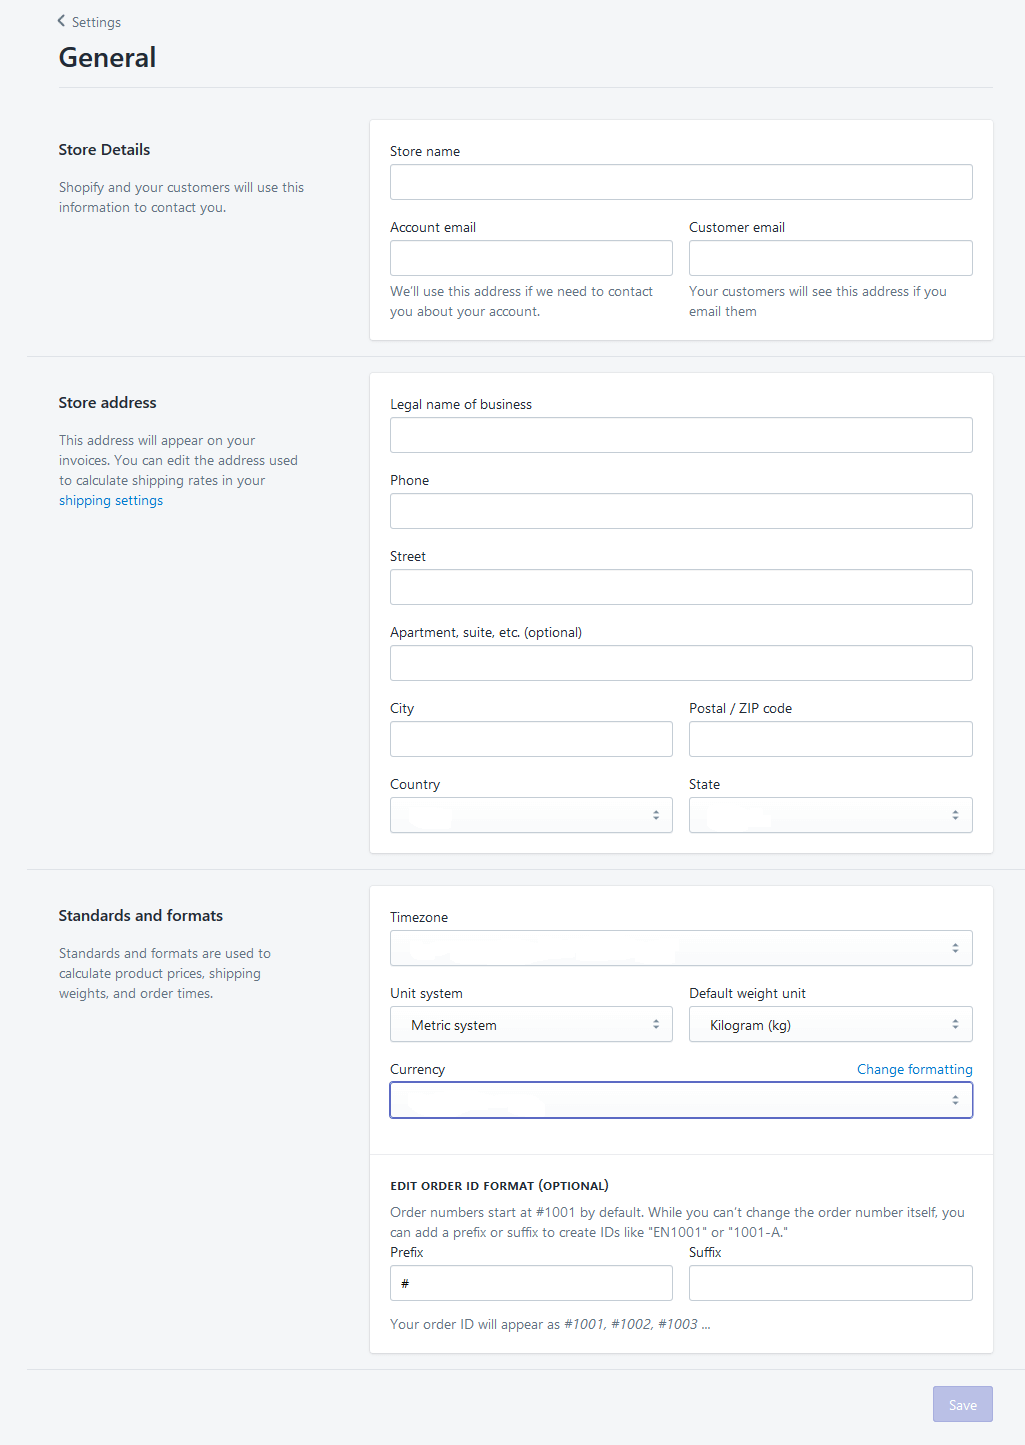 how to change order details on shopify